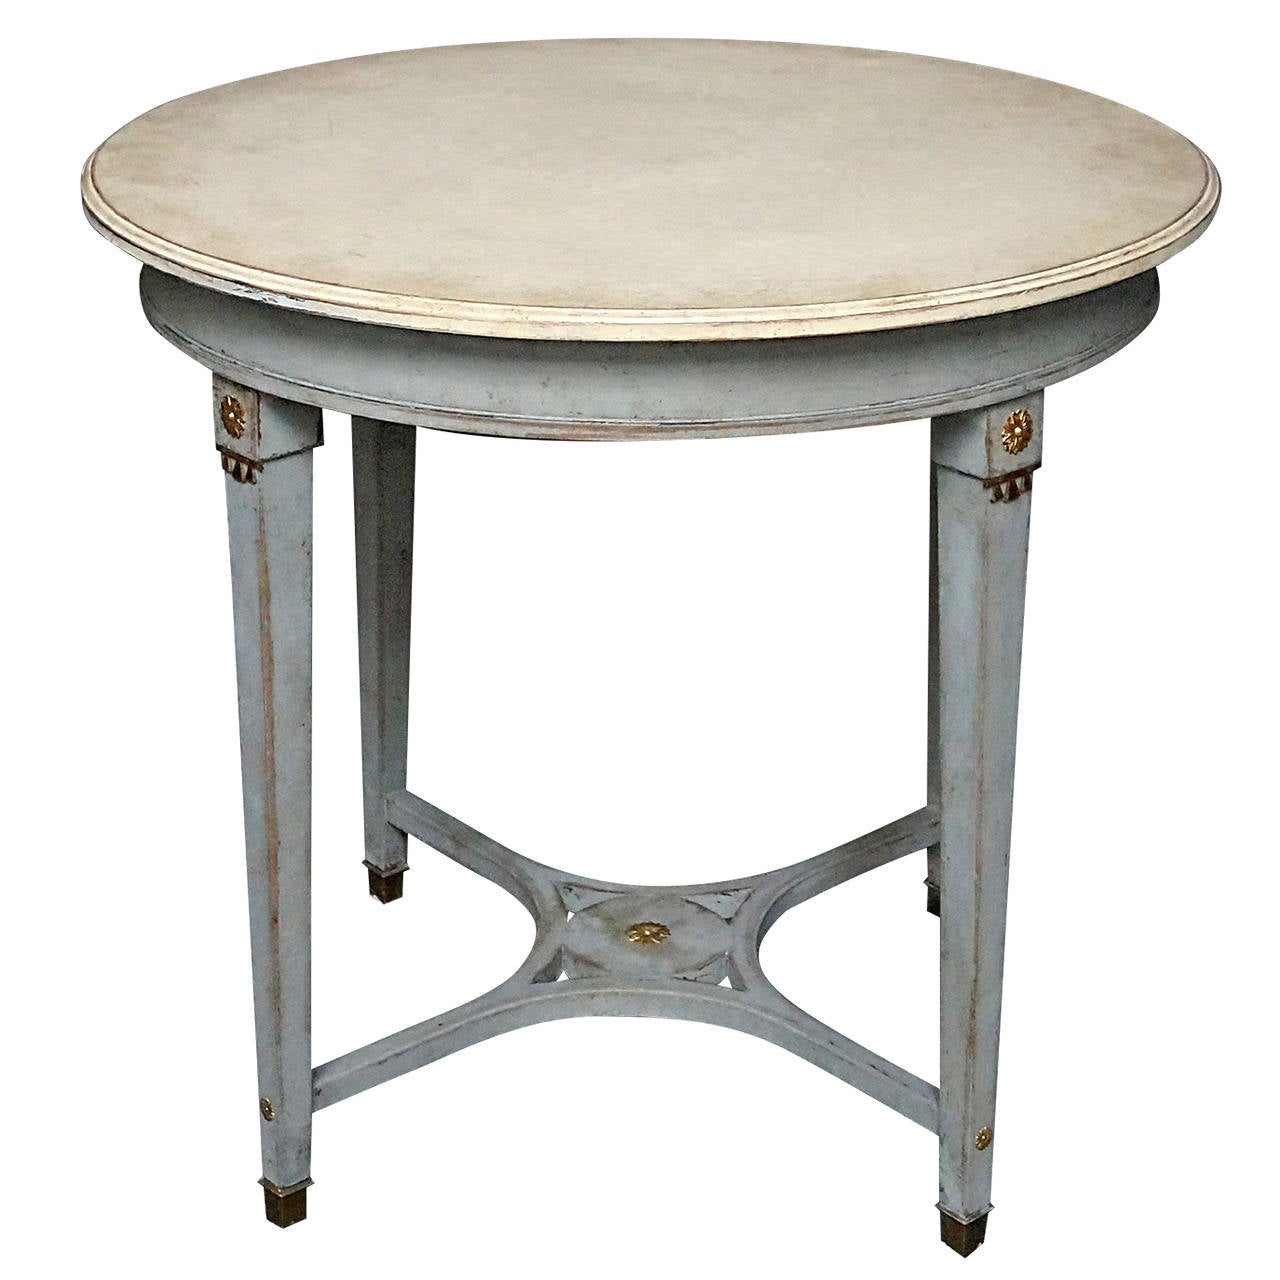 49 Coffee Table Nickel Finish Solid Iron Casters: Bronze Mounted Swedish Table At 1stdibs